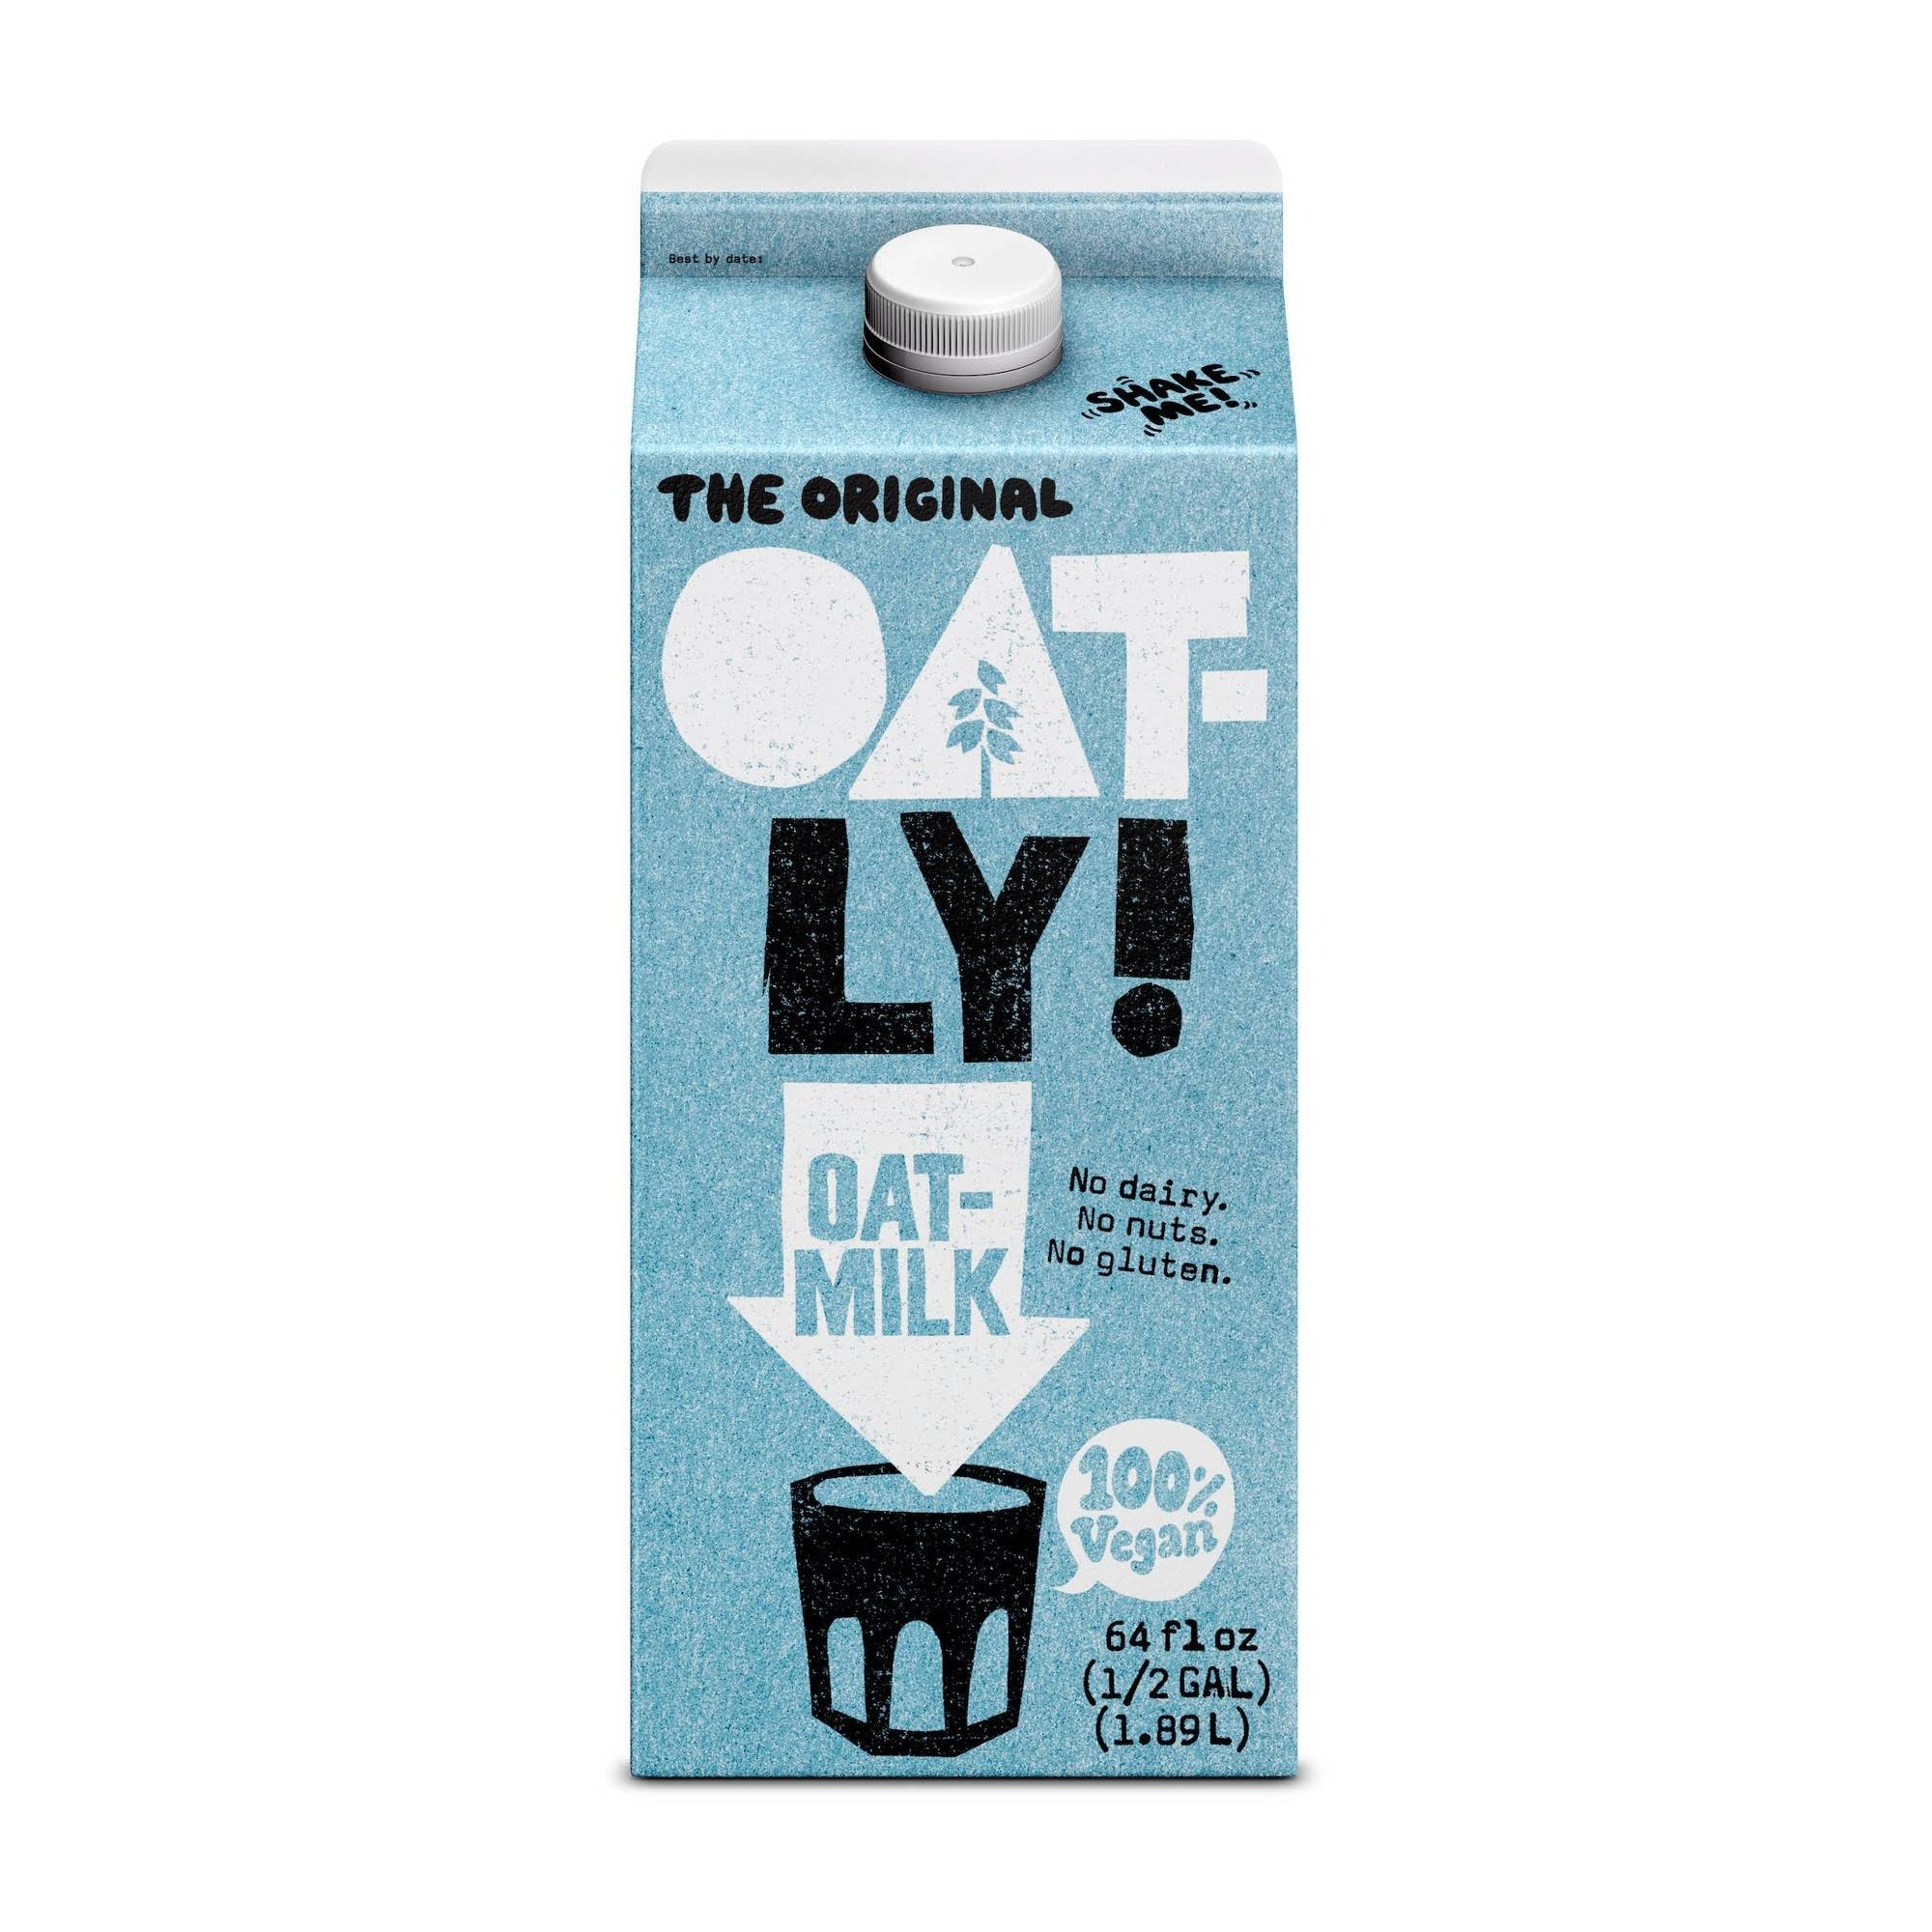 Oatly Oatmilk, The Original - 64 fl oz